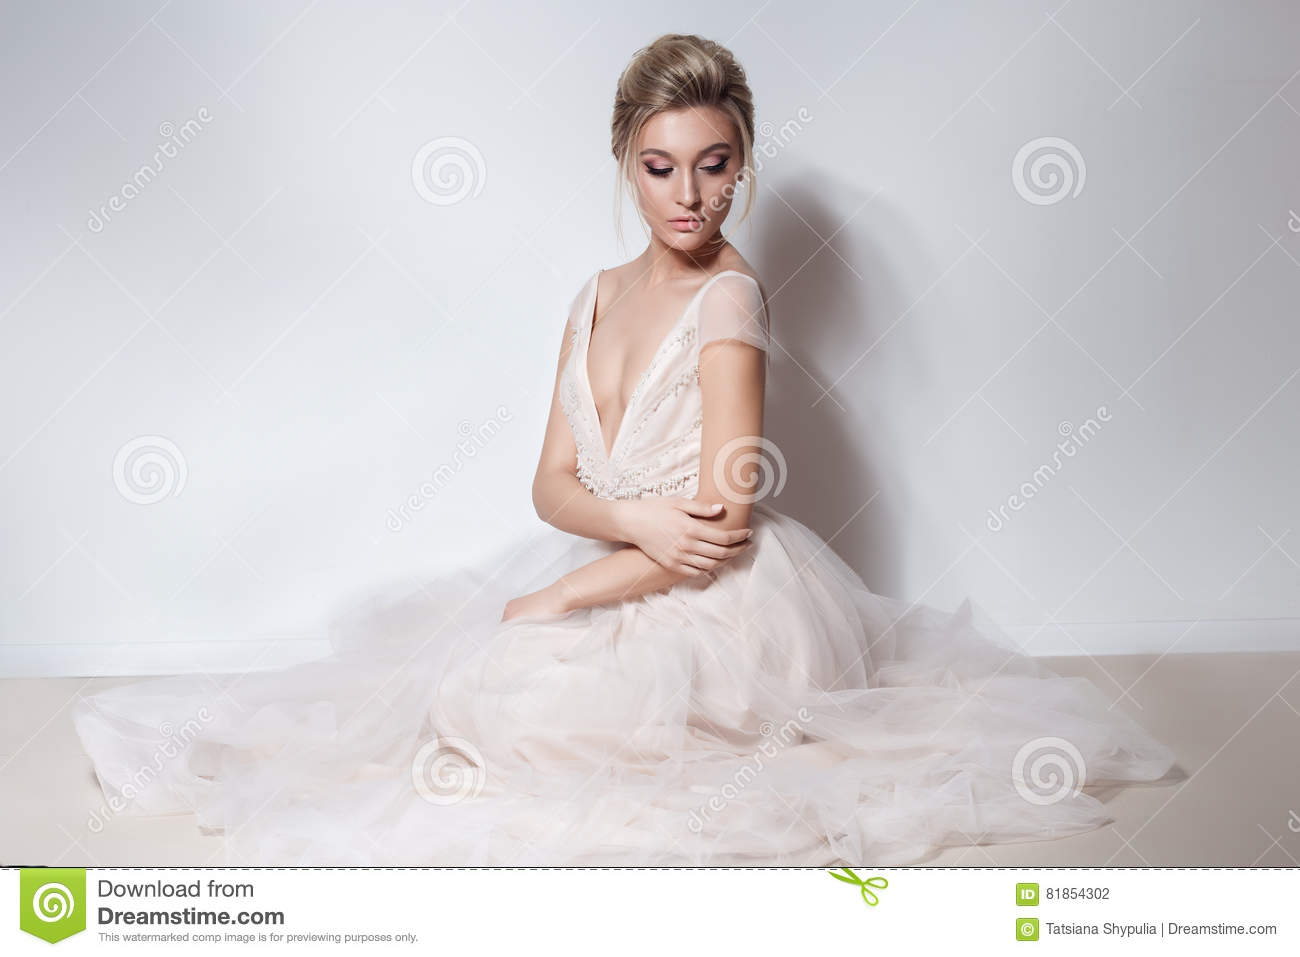 Girl bride in wedding dress royalty free stock image for Wedding dress in stock